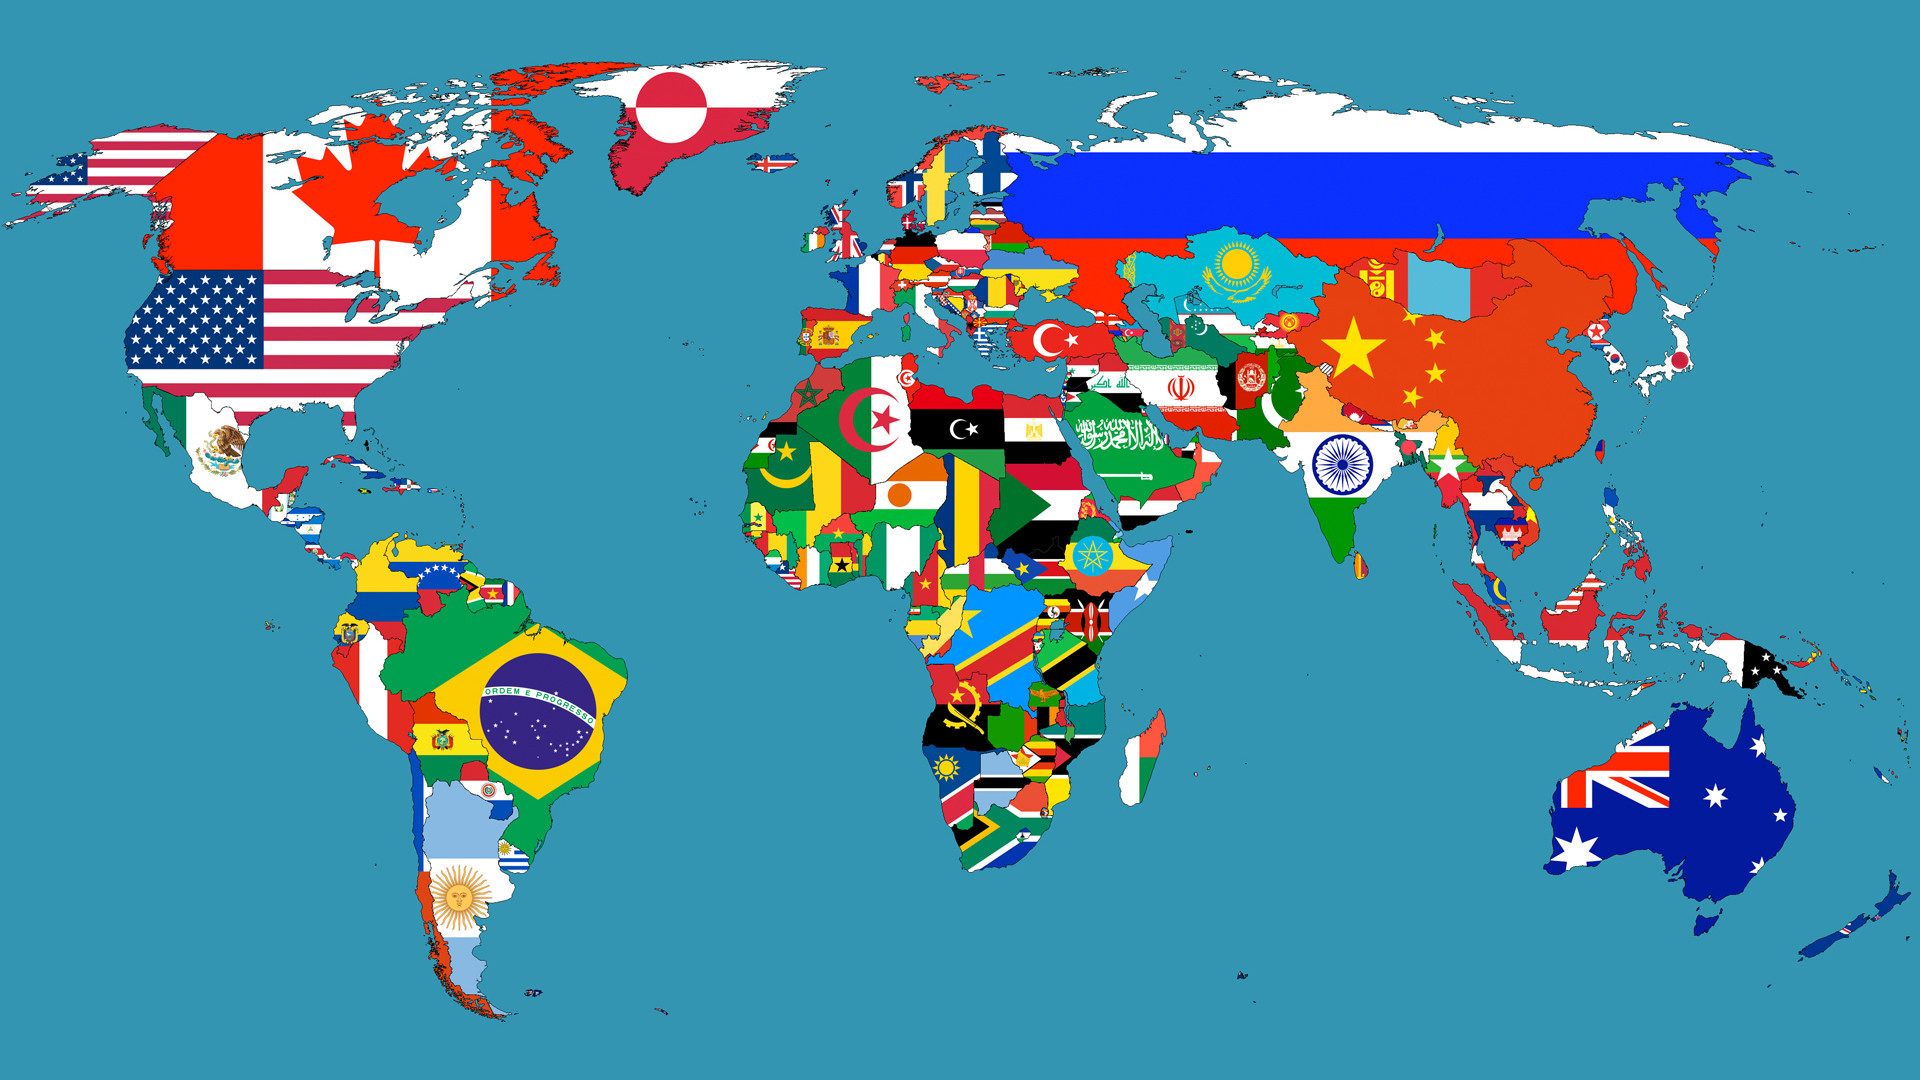 World map desktop wallpaper hd 70 images 1920x1080 blue world map hd desktop wallpaper widescreen high definition gumiabroncs Image collections